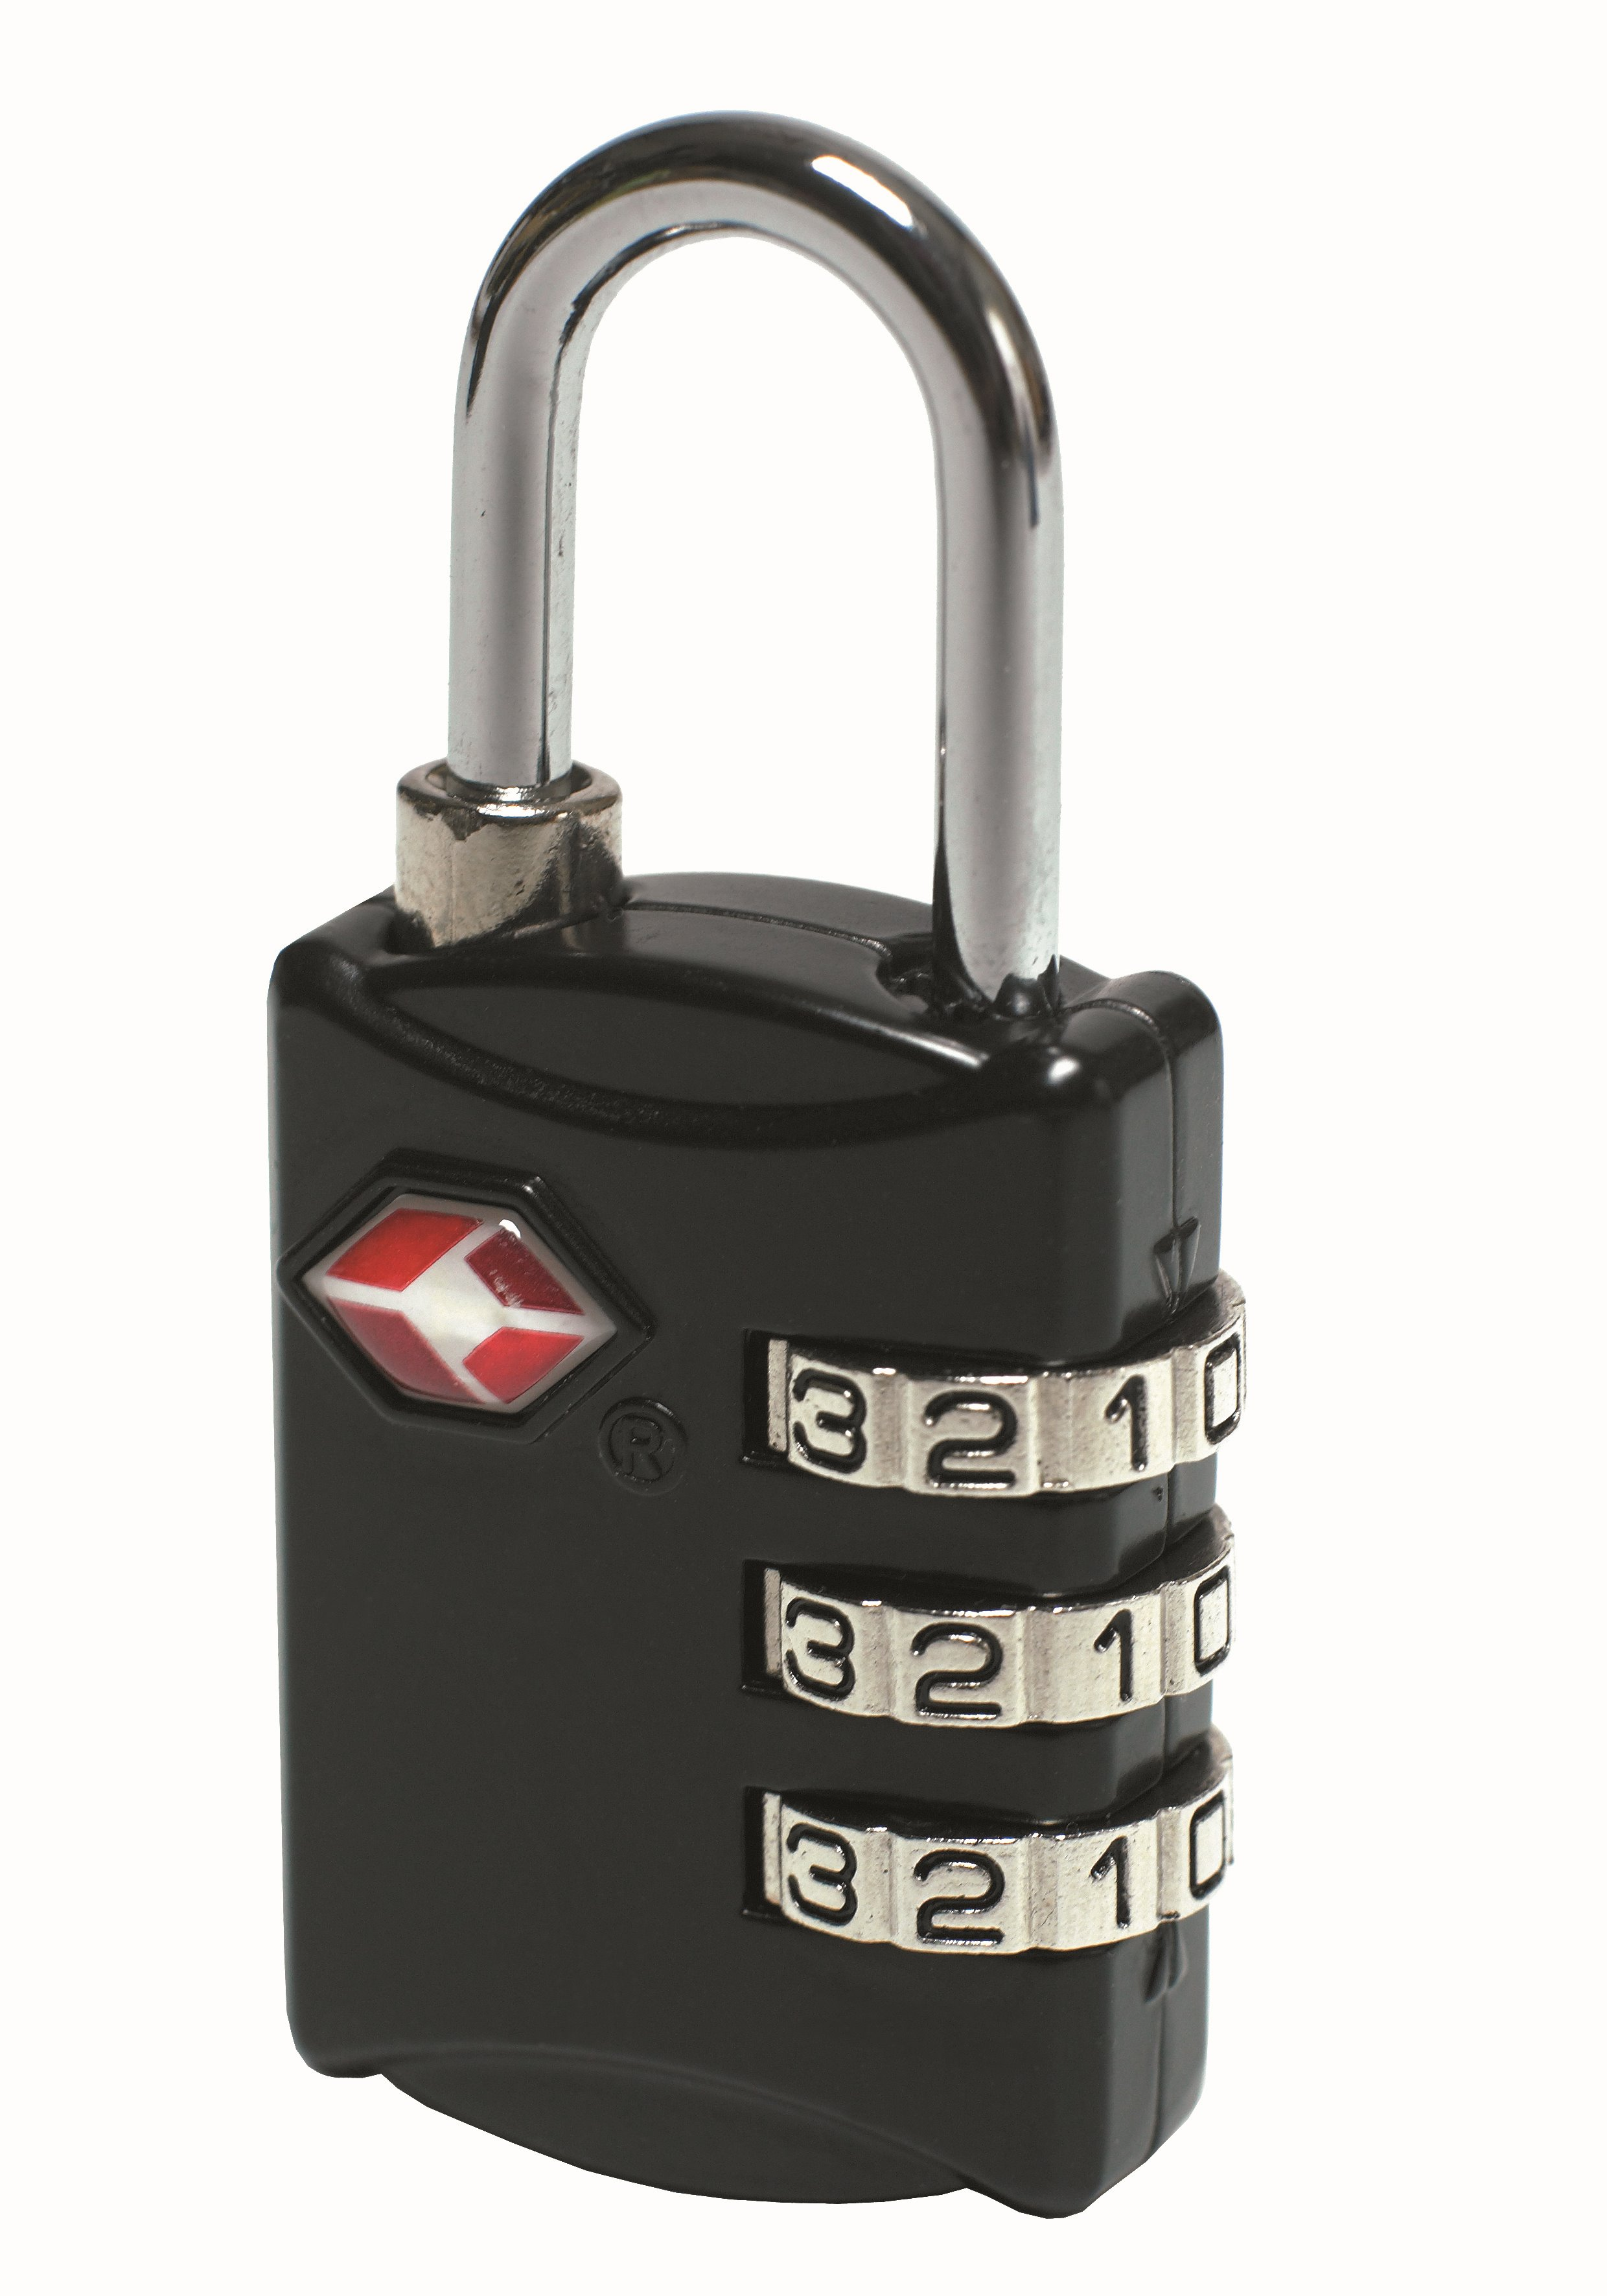 A simple combination lock, which ensures that your luggage is locked. The lock shows whether it has been opened with a TSA key. If you luggage is locked with an ordinary lock, airport staff may cut it open if they need to inspect your luggage. However, if your luggage is locked with a TSA lock, the lock will not be cut open. It will be locked again as soon as the inspection has been completed.